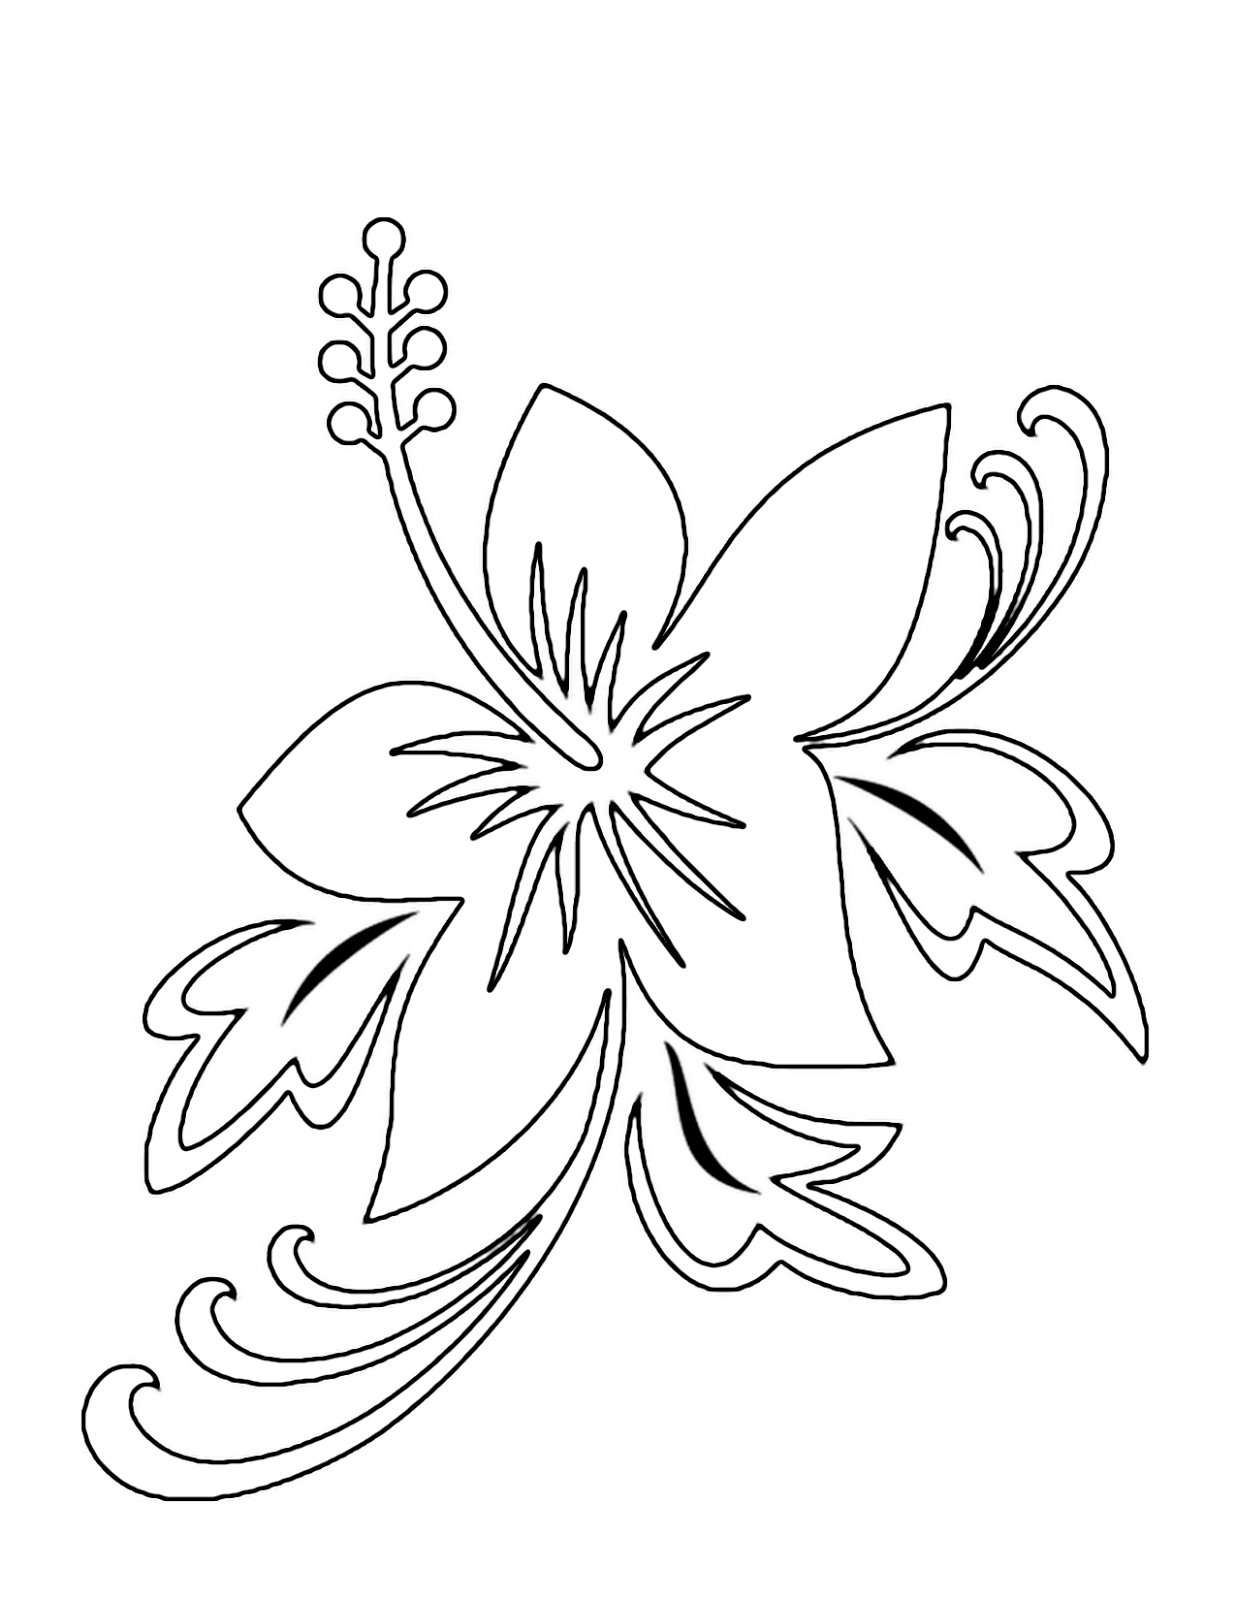 images of flowers to color free printable flower coloring pages for kids cool2bkids to color flowers images of